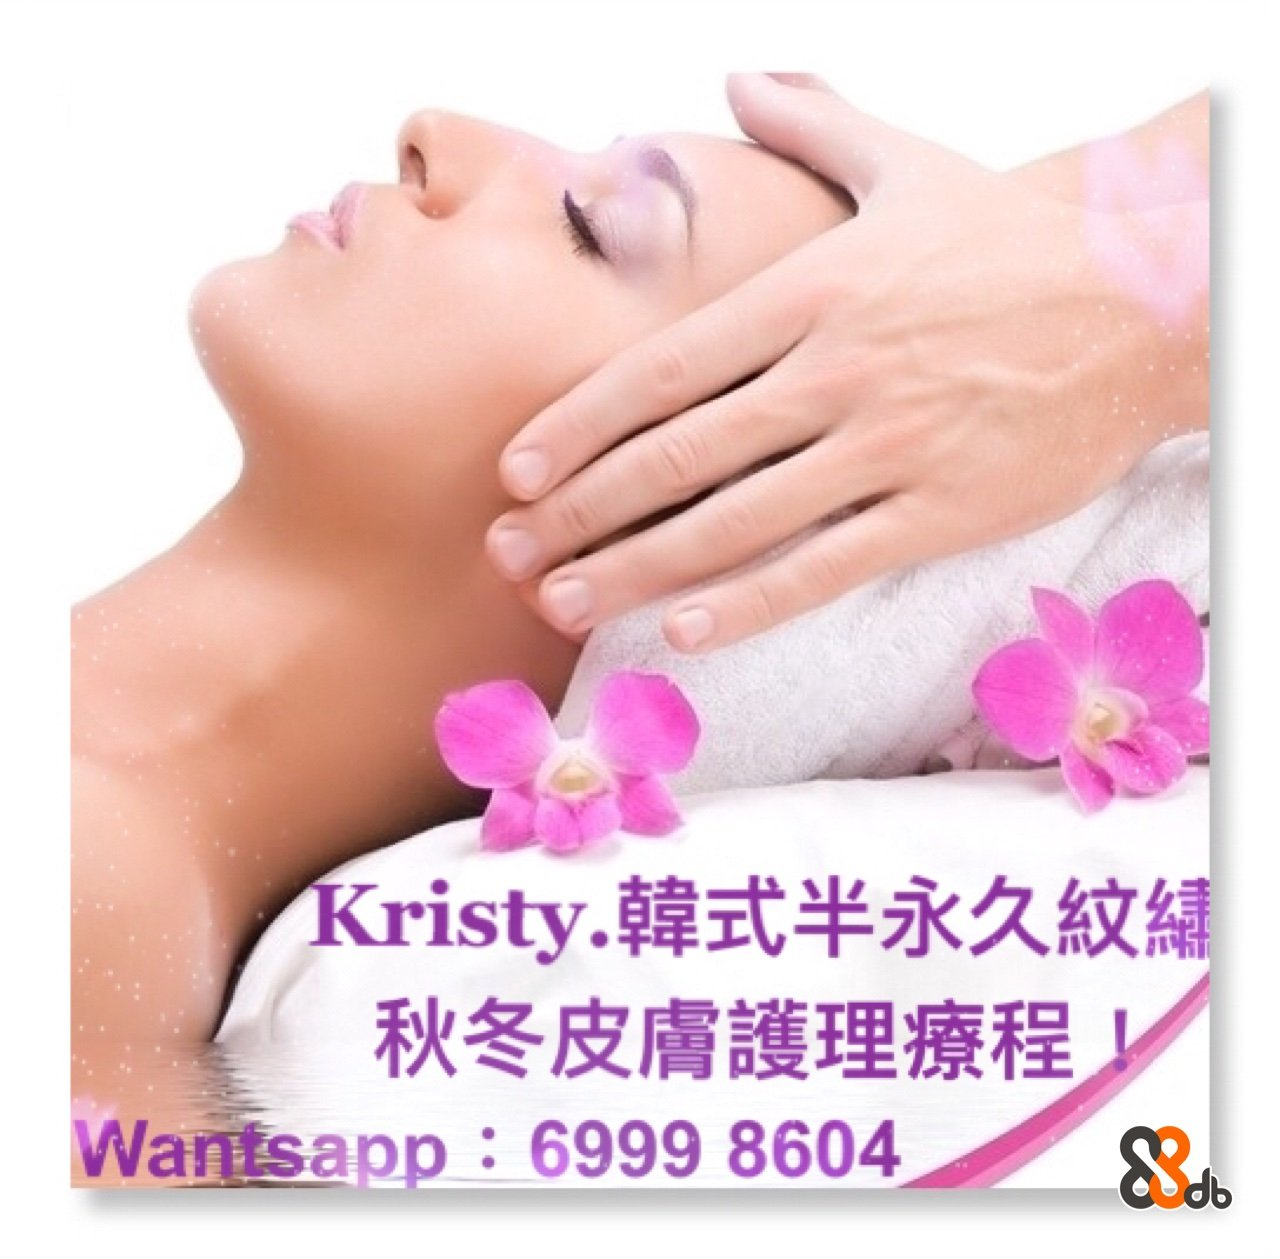 Kristy.韓式半永久紋 秋冬皮膚護理療程 ㄗㄡ Wantsapp 6999 860.4 wansapp : 6999 8604/ /  face,skin,cheek,beauty,chin